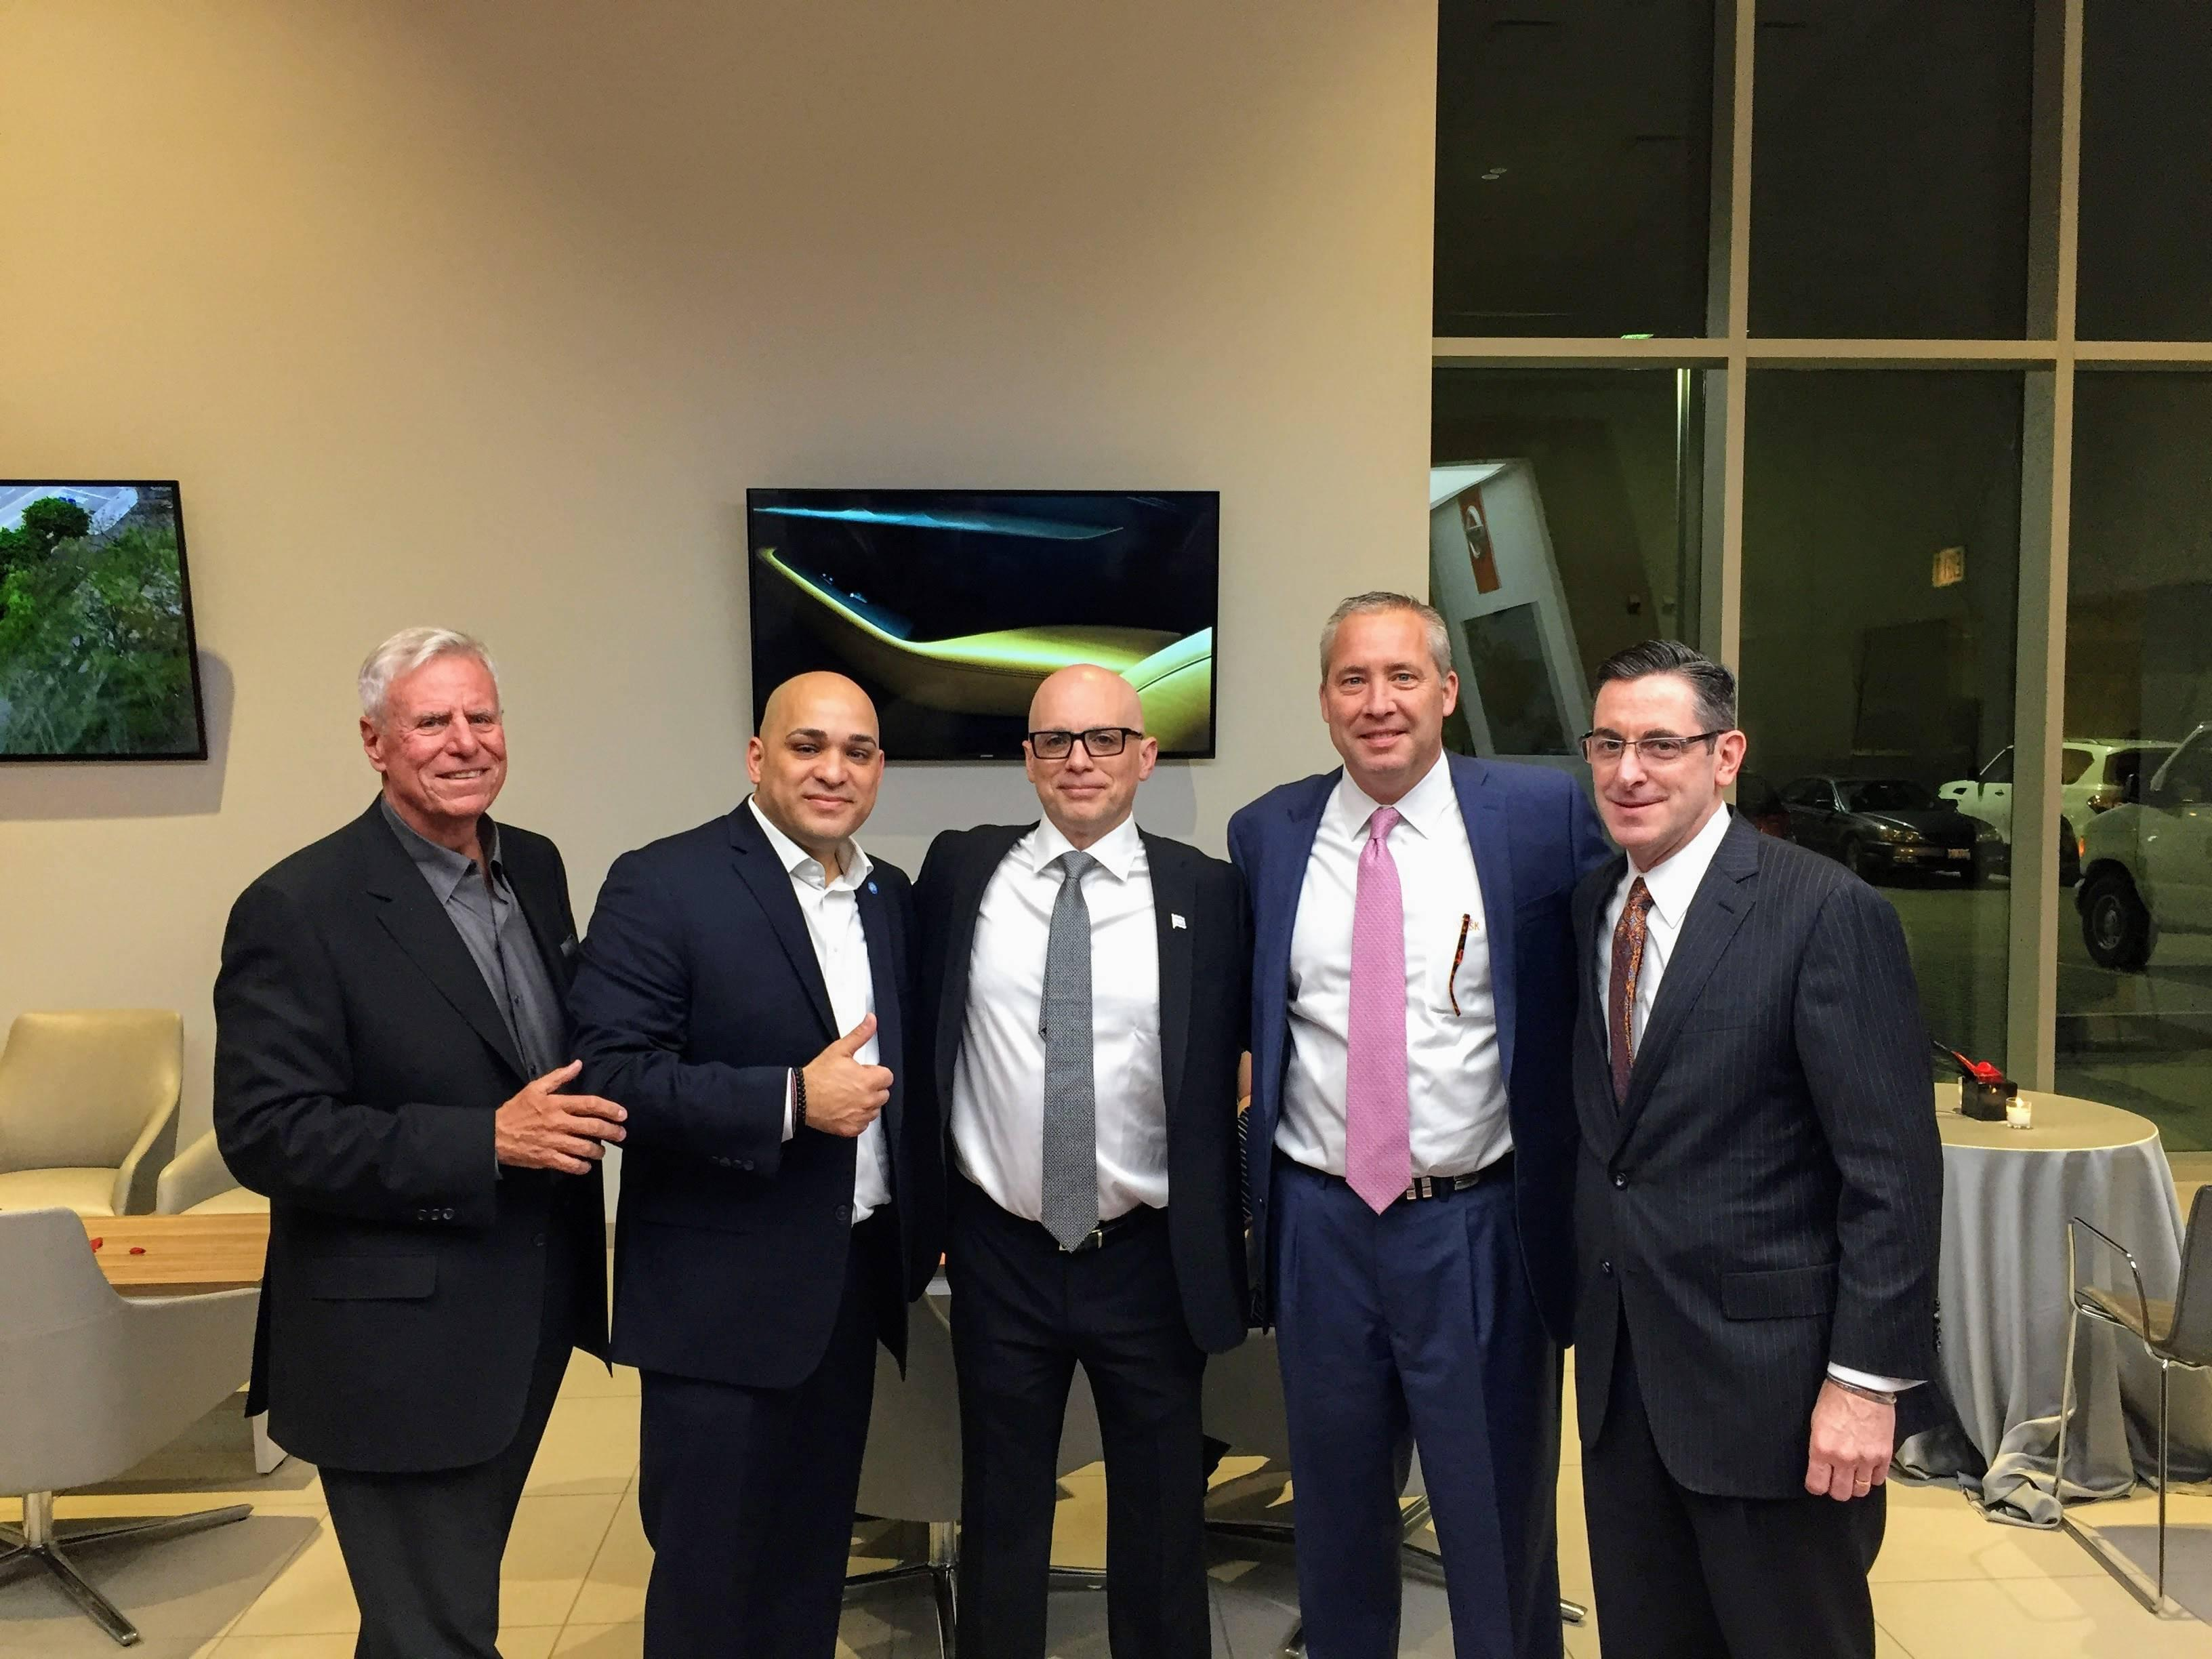 Michael Berman with Commissioner Luis Arroyo Jr, VP George Katsikas, and Nissan Execs;